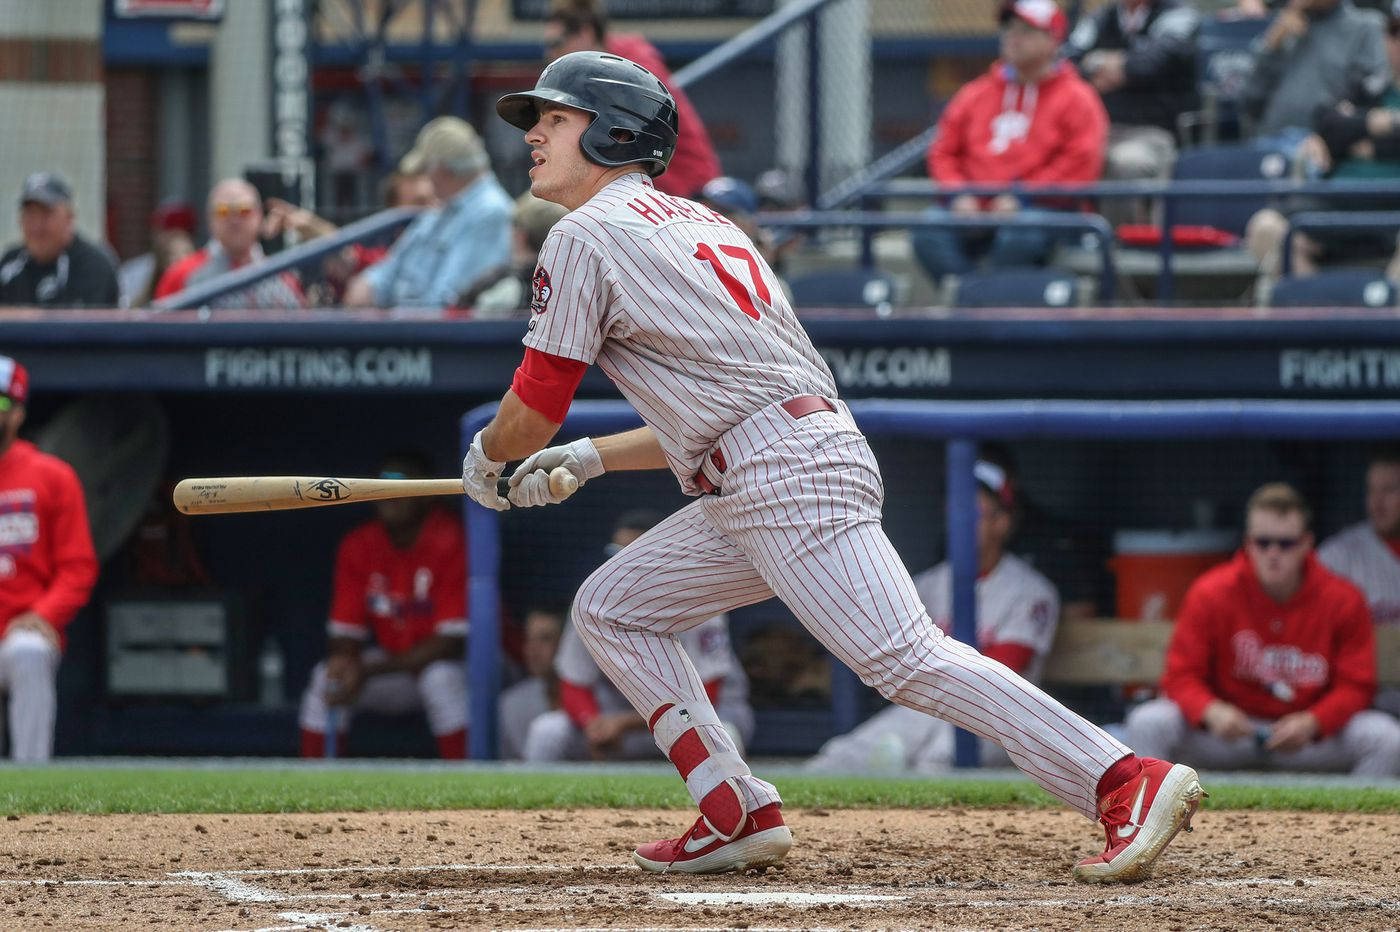 Phillies promote prospect Adam Haseley to triple-A Lehigh Valley